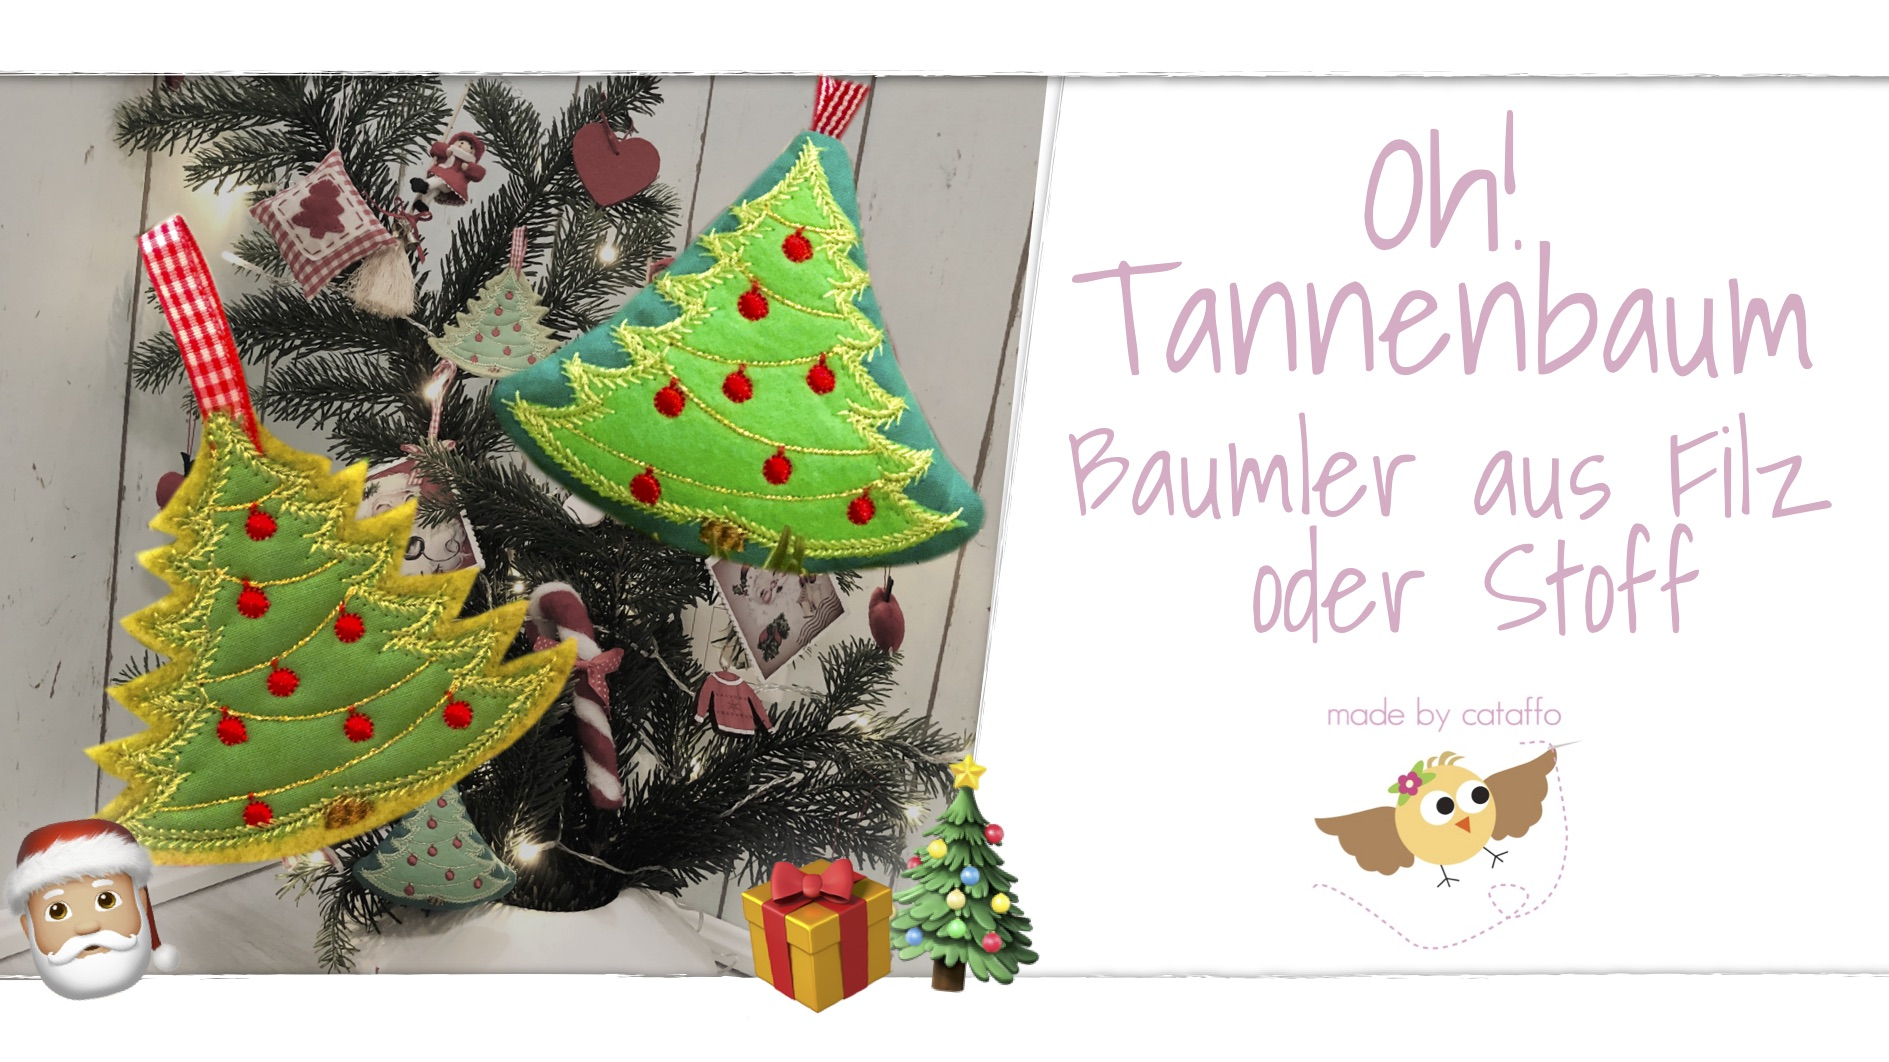 Oh! Tannenbaum Stickdatei-Freebie mit Video